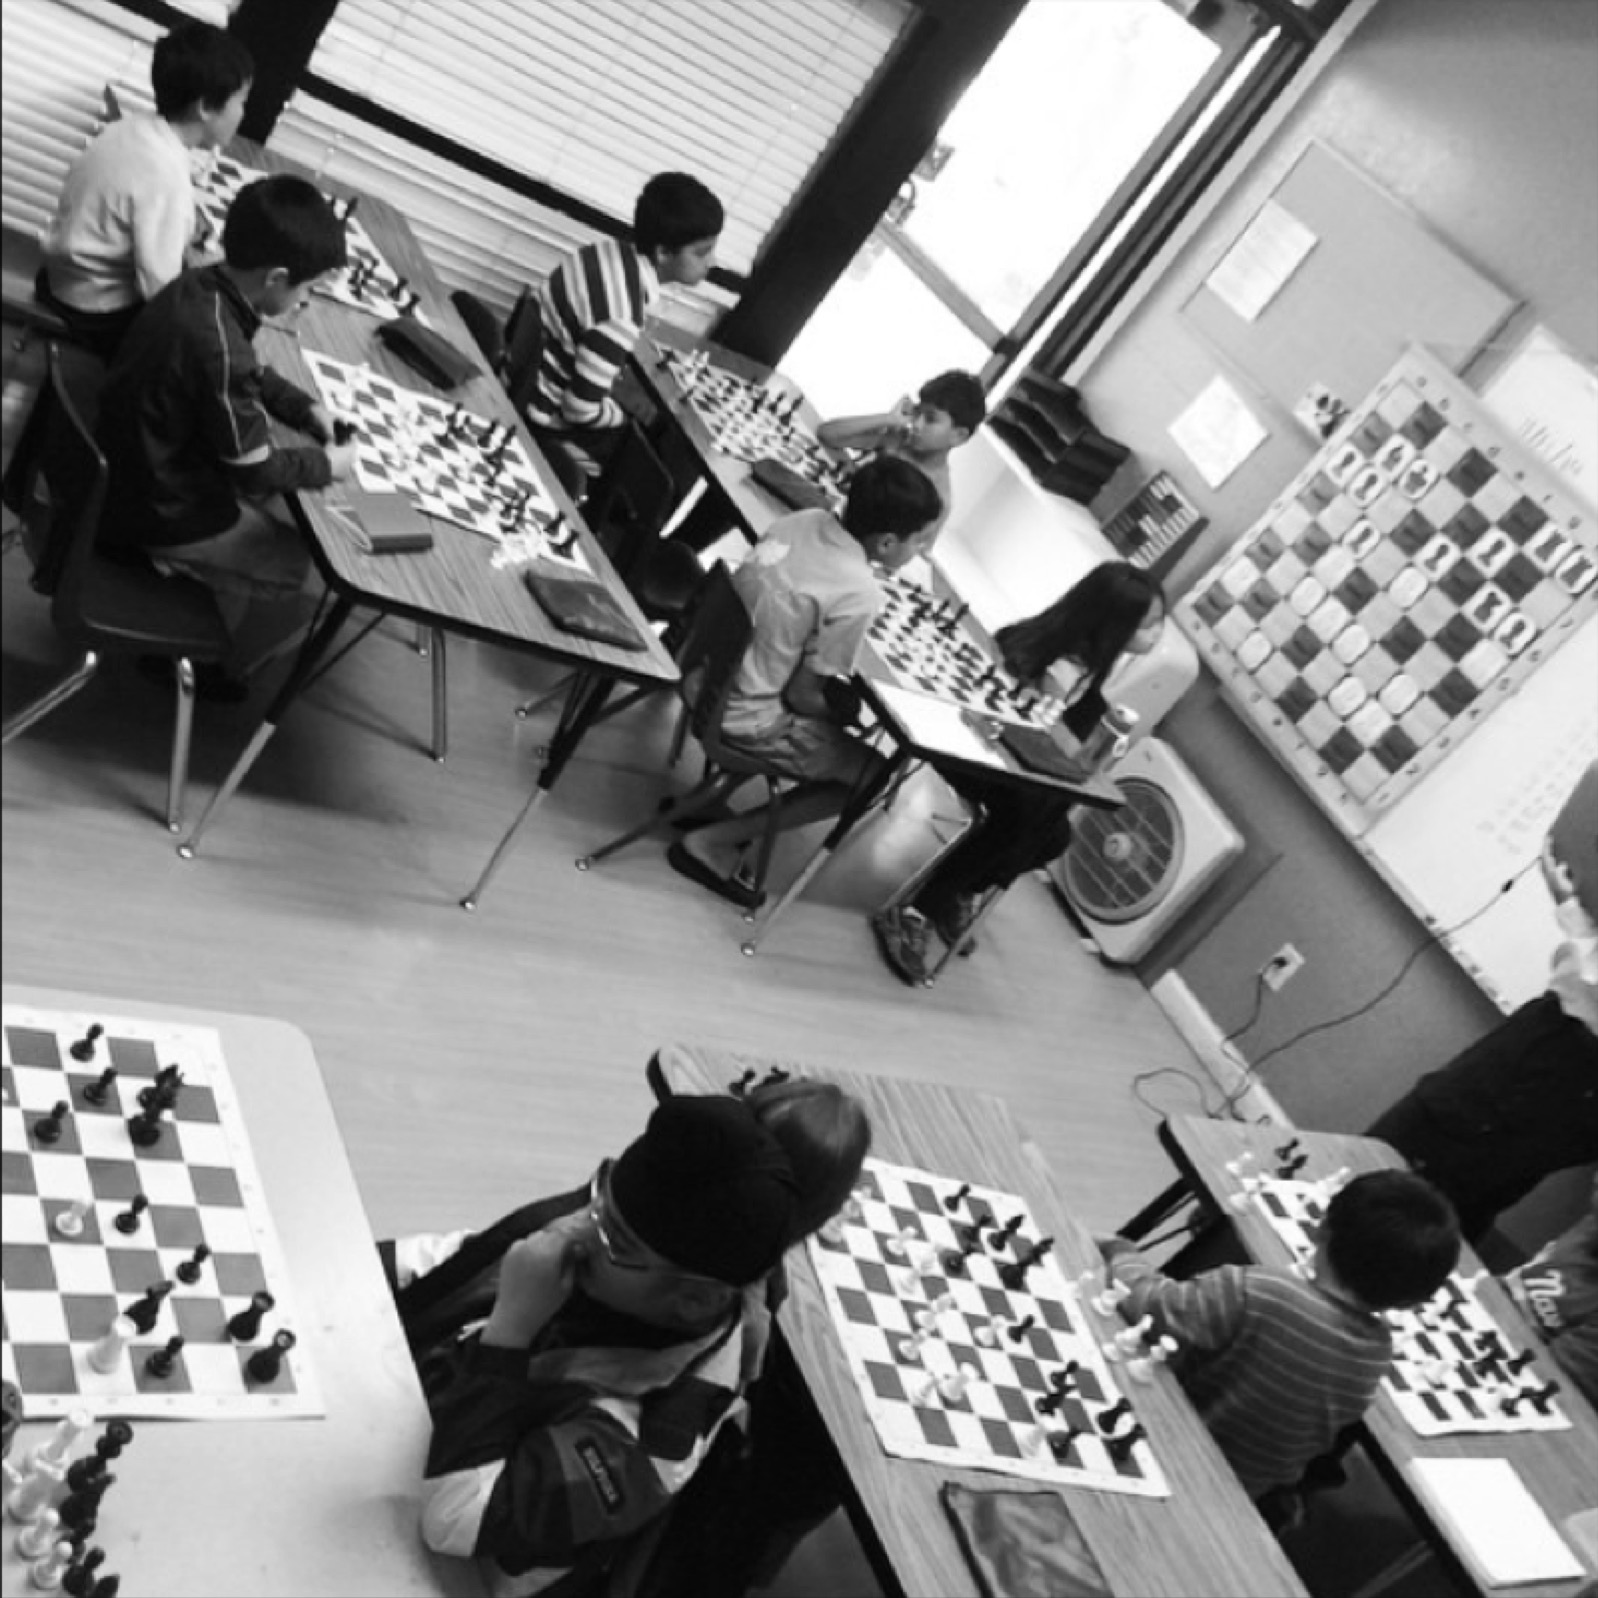 Famed Bay Area Chess Coach Preparing Kids for the World Chess Championship